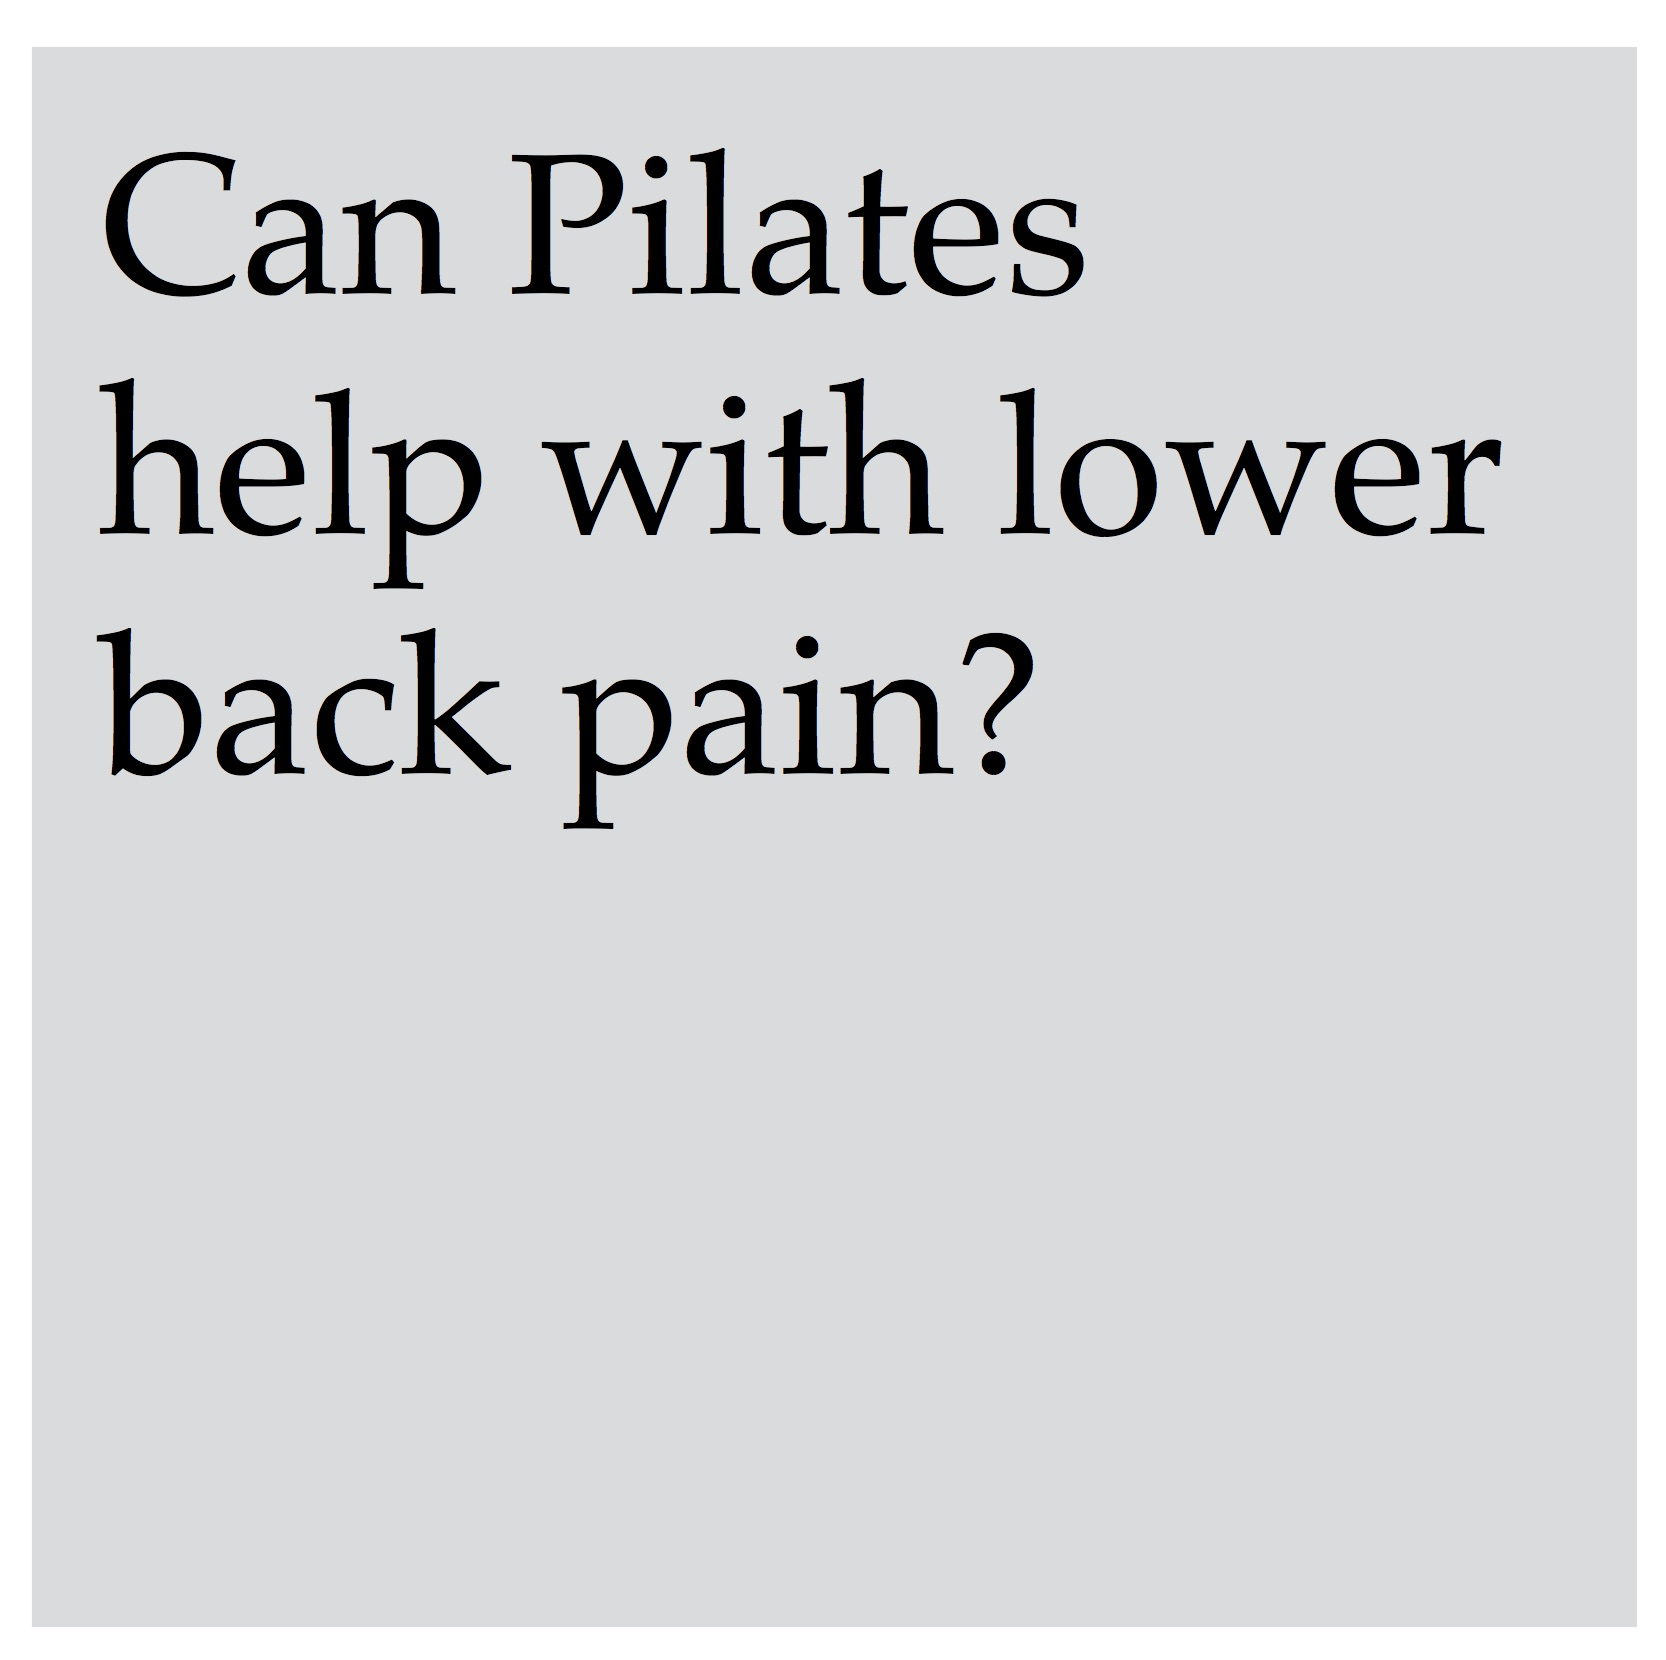 Pilates is excellent for addressing lower back issues. Because it engages the deep core muscles of the body including the abdomen, psoas, lower back and buttocks, you'll strengthen the muscles that surround and support the spine. This helps reduce back pain, improve posture and ease neck and shoulder tension.